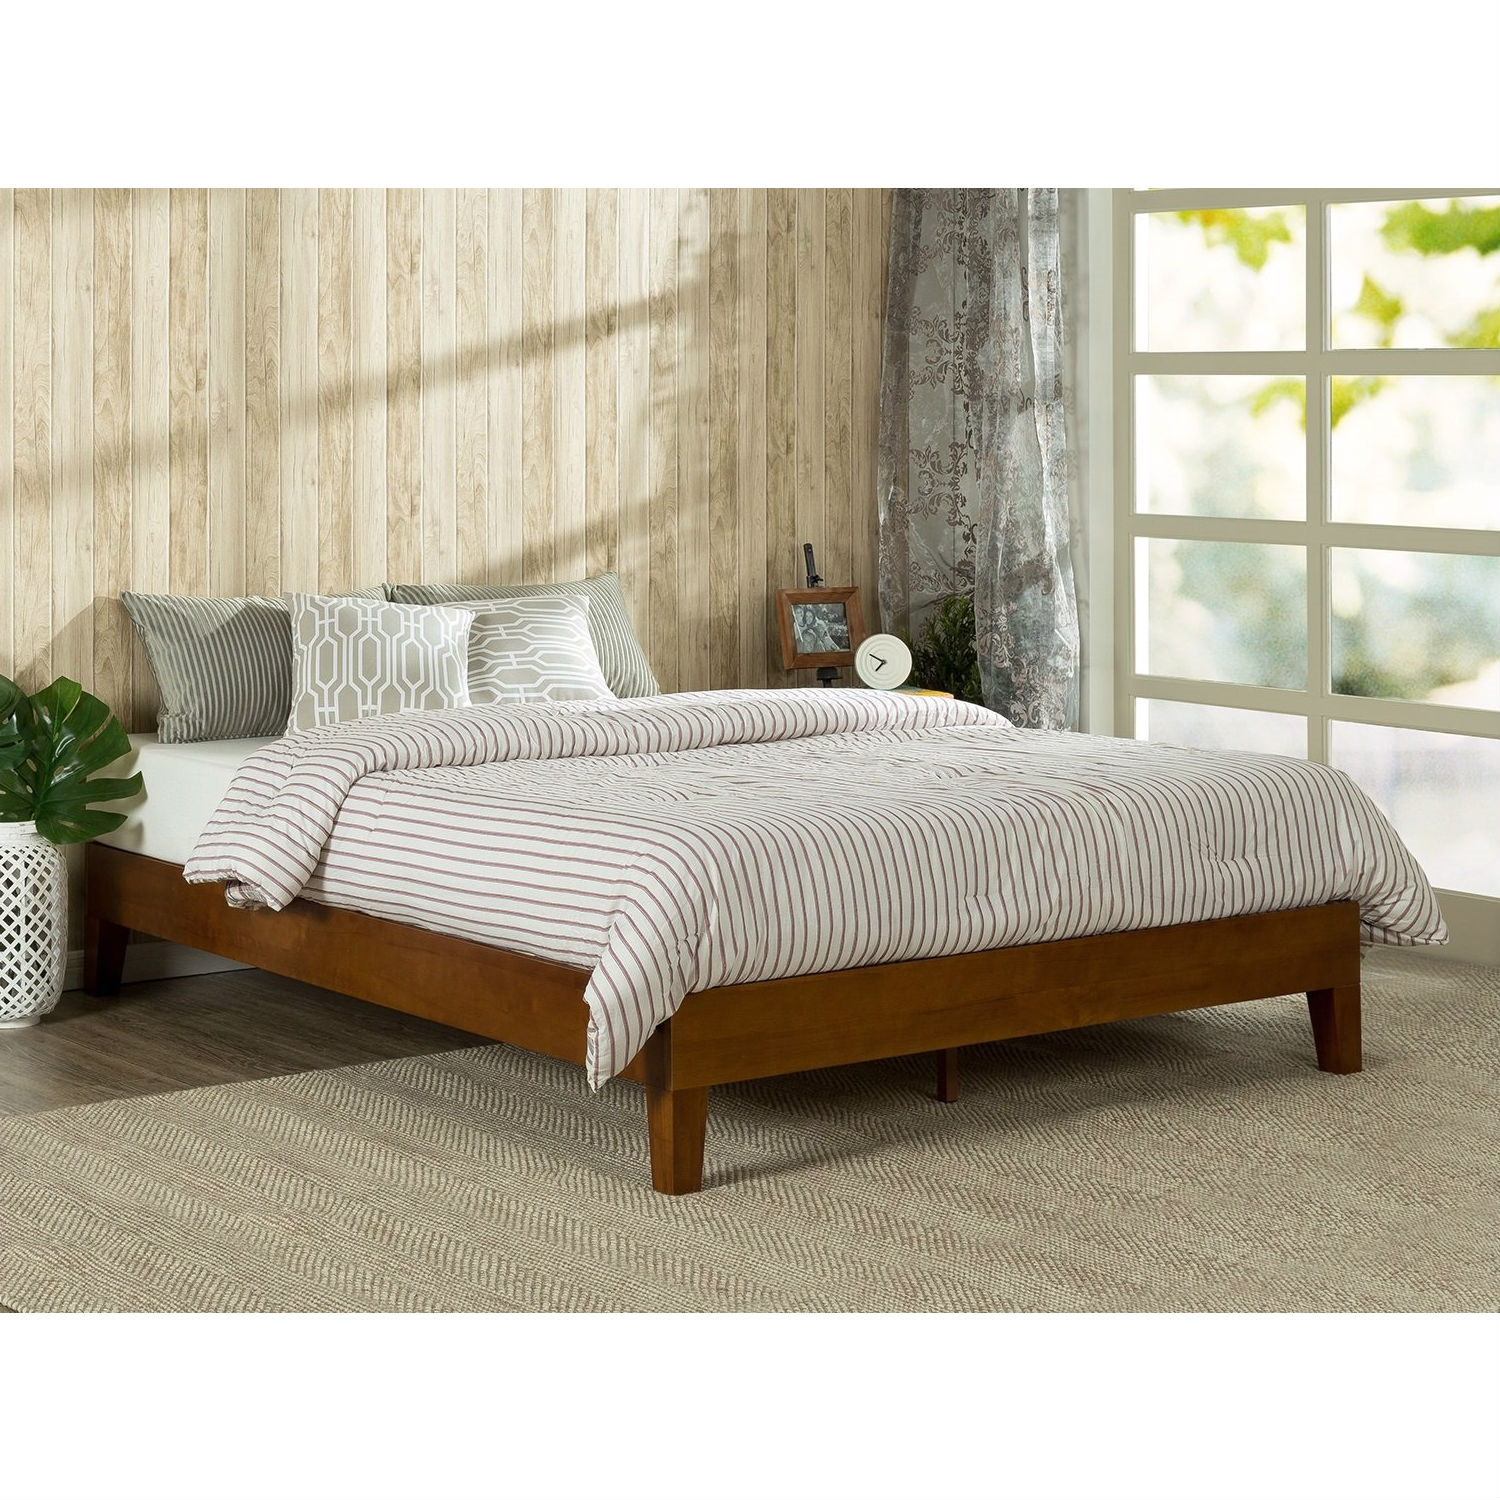 King size Modern Low Profile Solid Wood Platform Bed Frame in Cherry